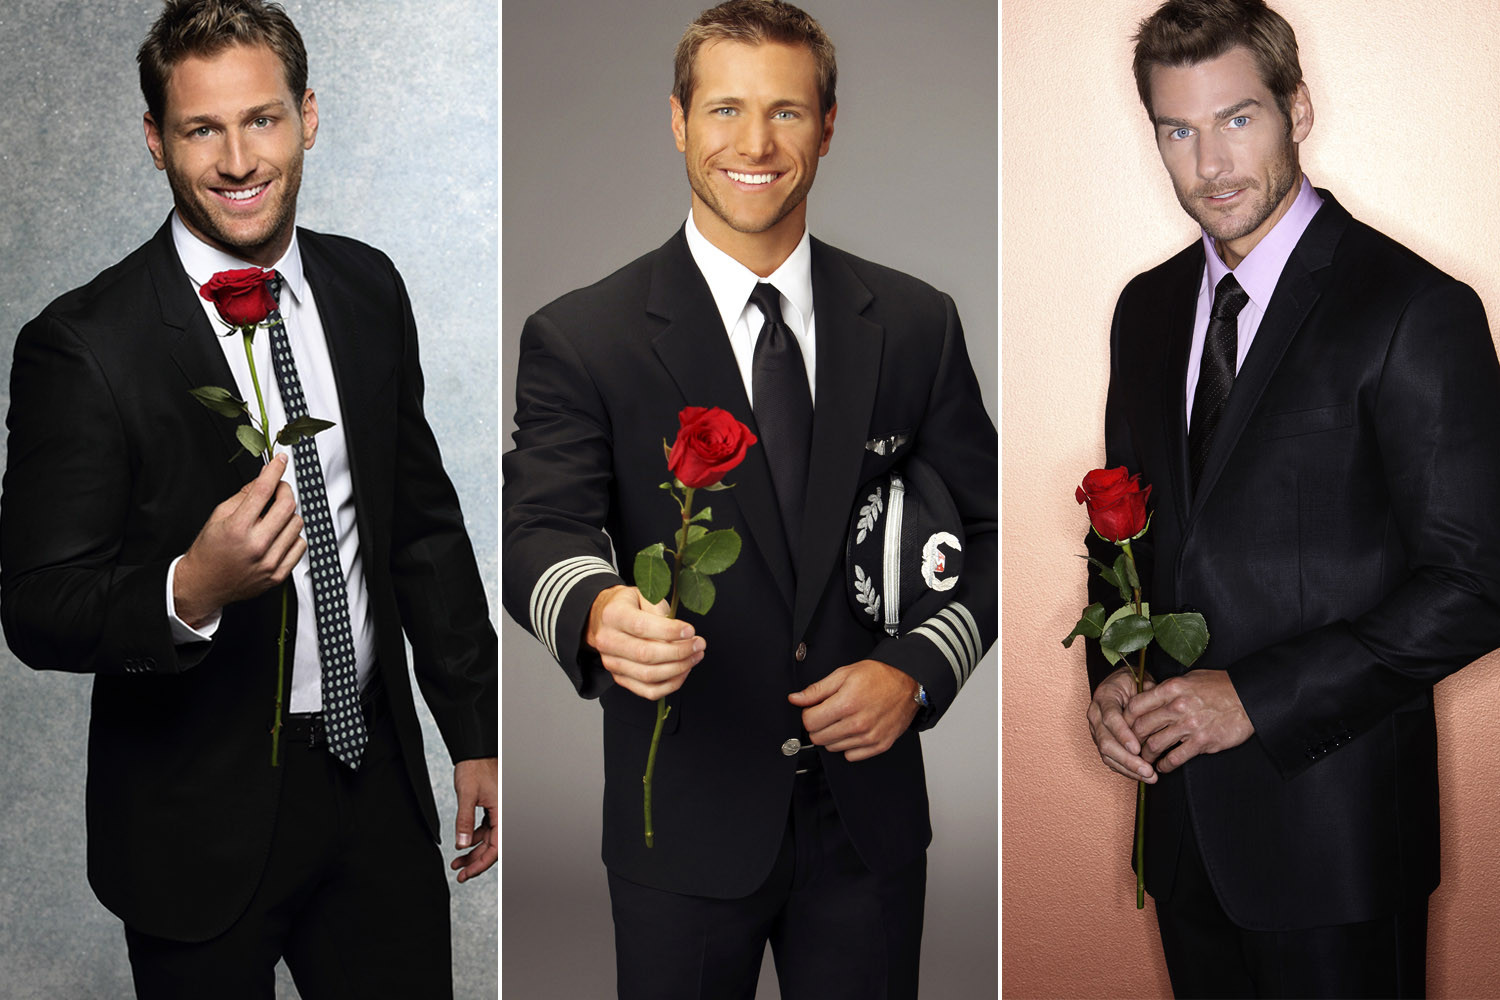 Bachelor Nation Blunders: From behind-the-scenes flirting to Arie Luyendyk Jr.